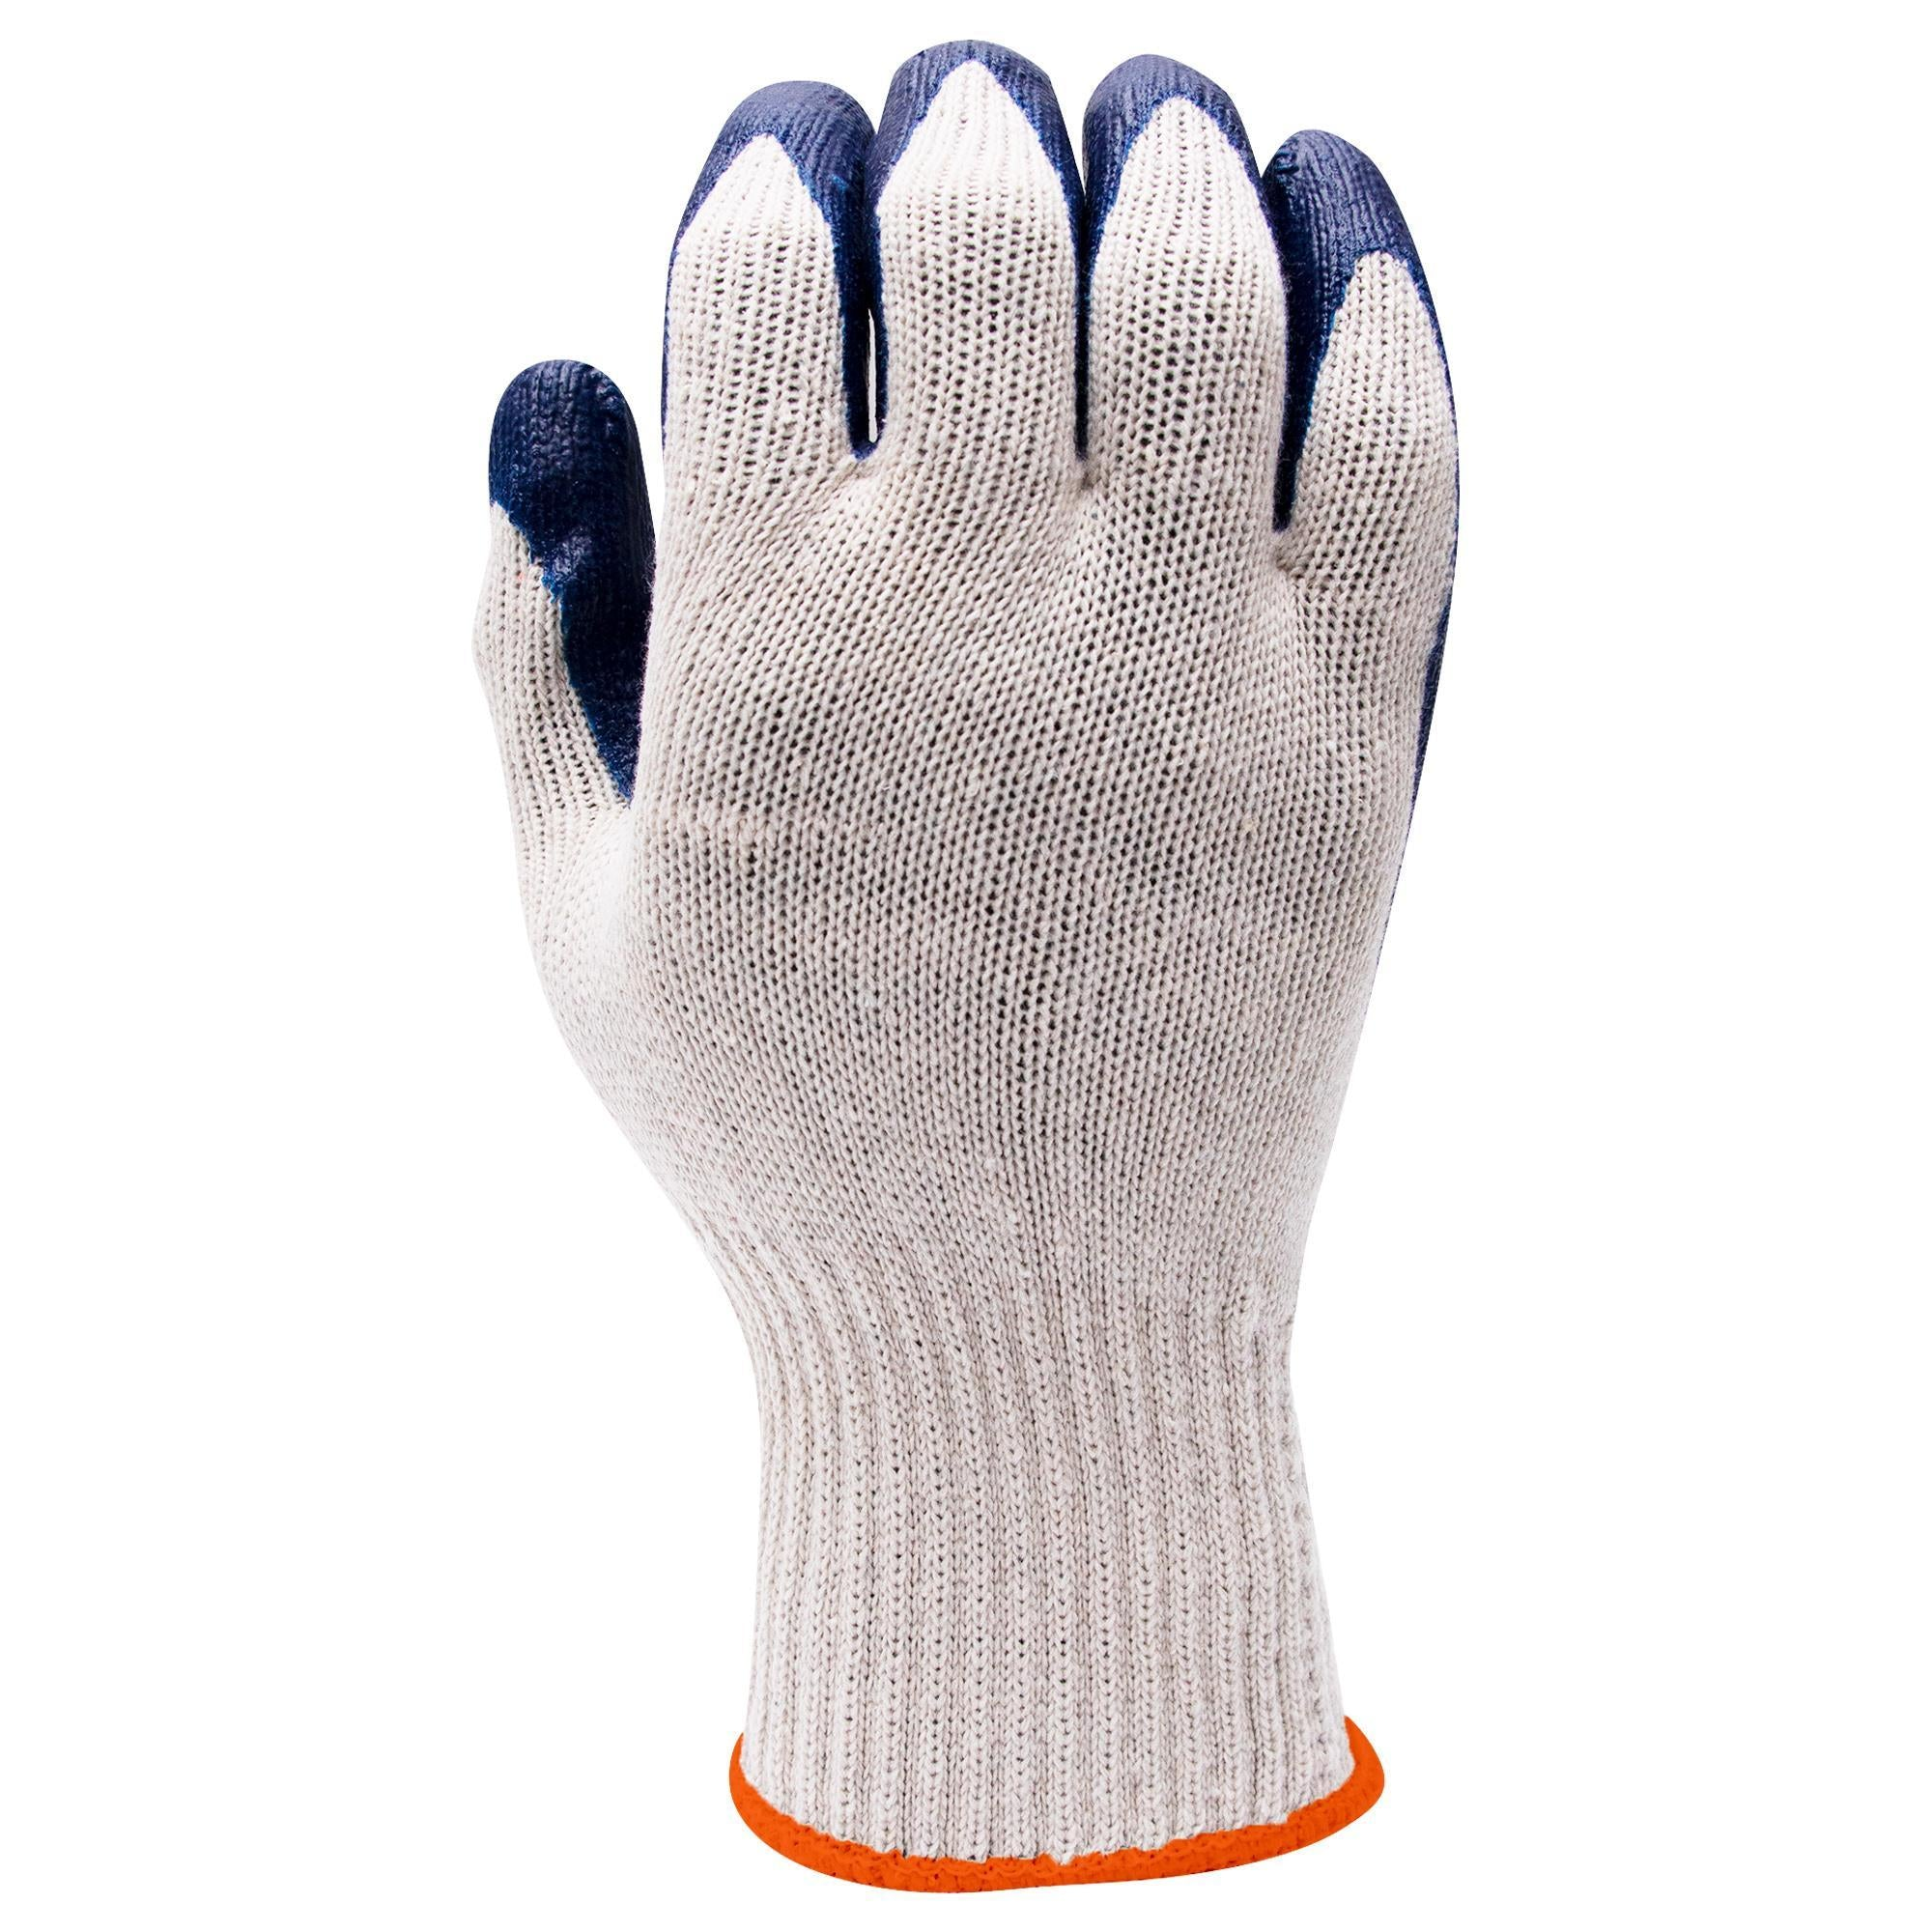 374-410 Latex Coated String Gloves 1pair